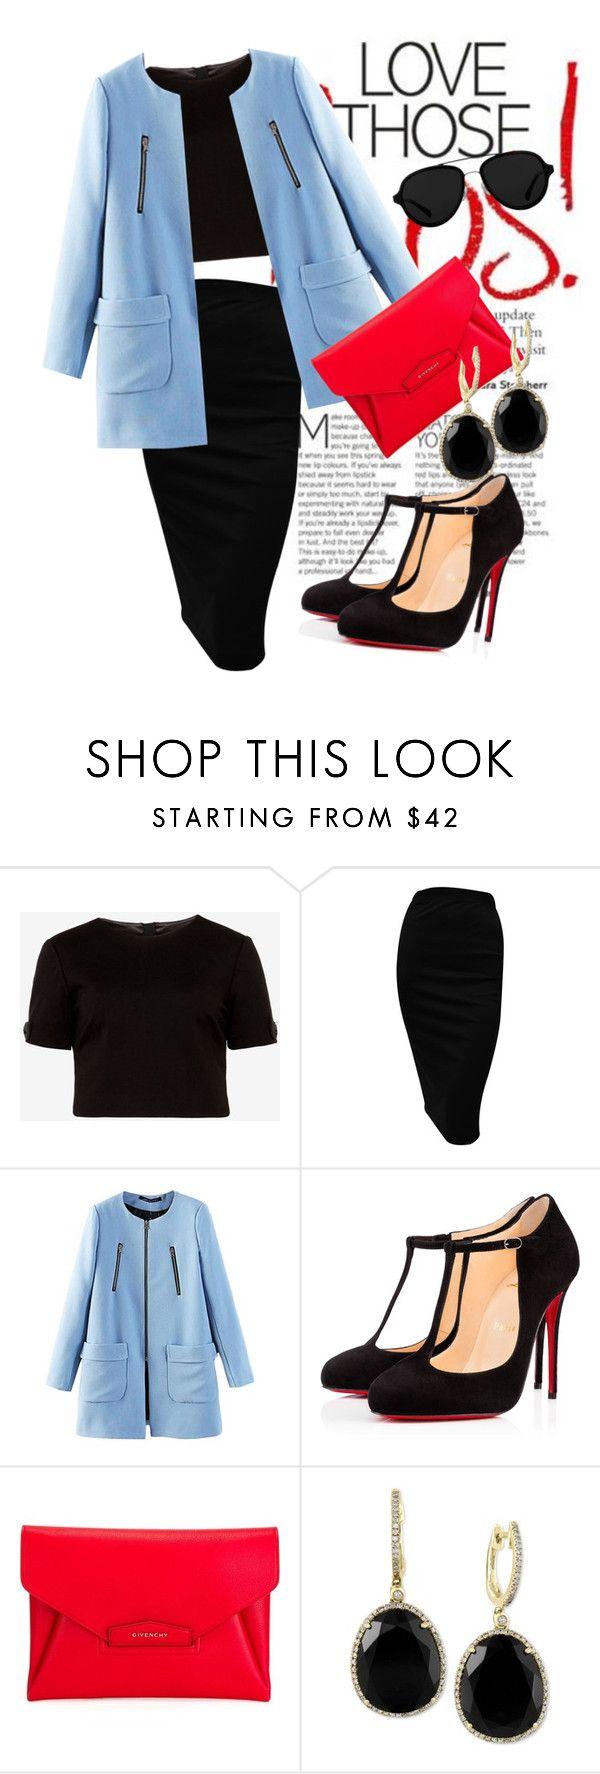 """""""39#badak cula satu #indonesia"""" by omahtawon ❤ liked on Polyvore featuring Ted Baker, Christian Louboutin, Givenchy, Effy Jewelry, 3.1 Phillip Lim, women's clothing, women, female, woman and misses"""